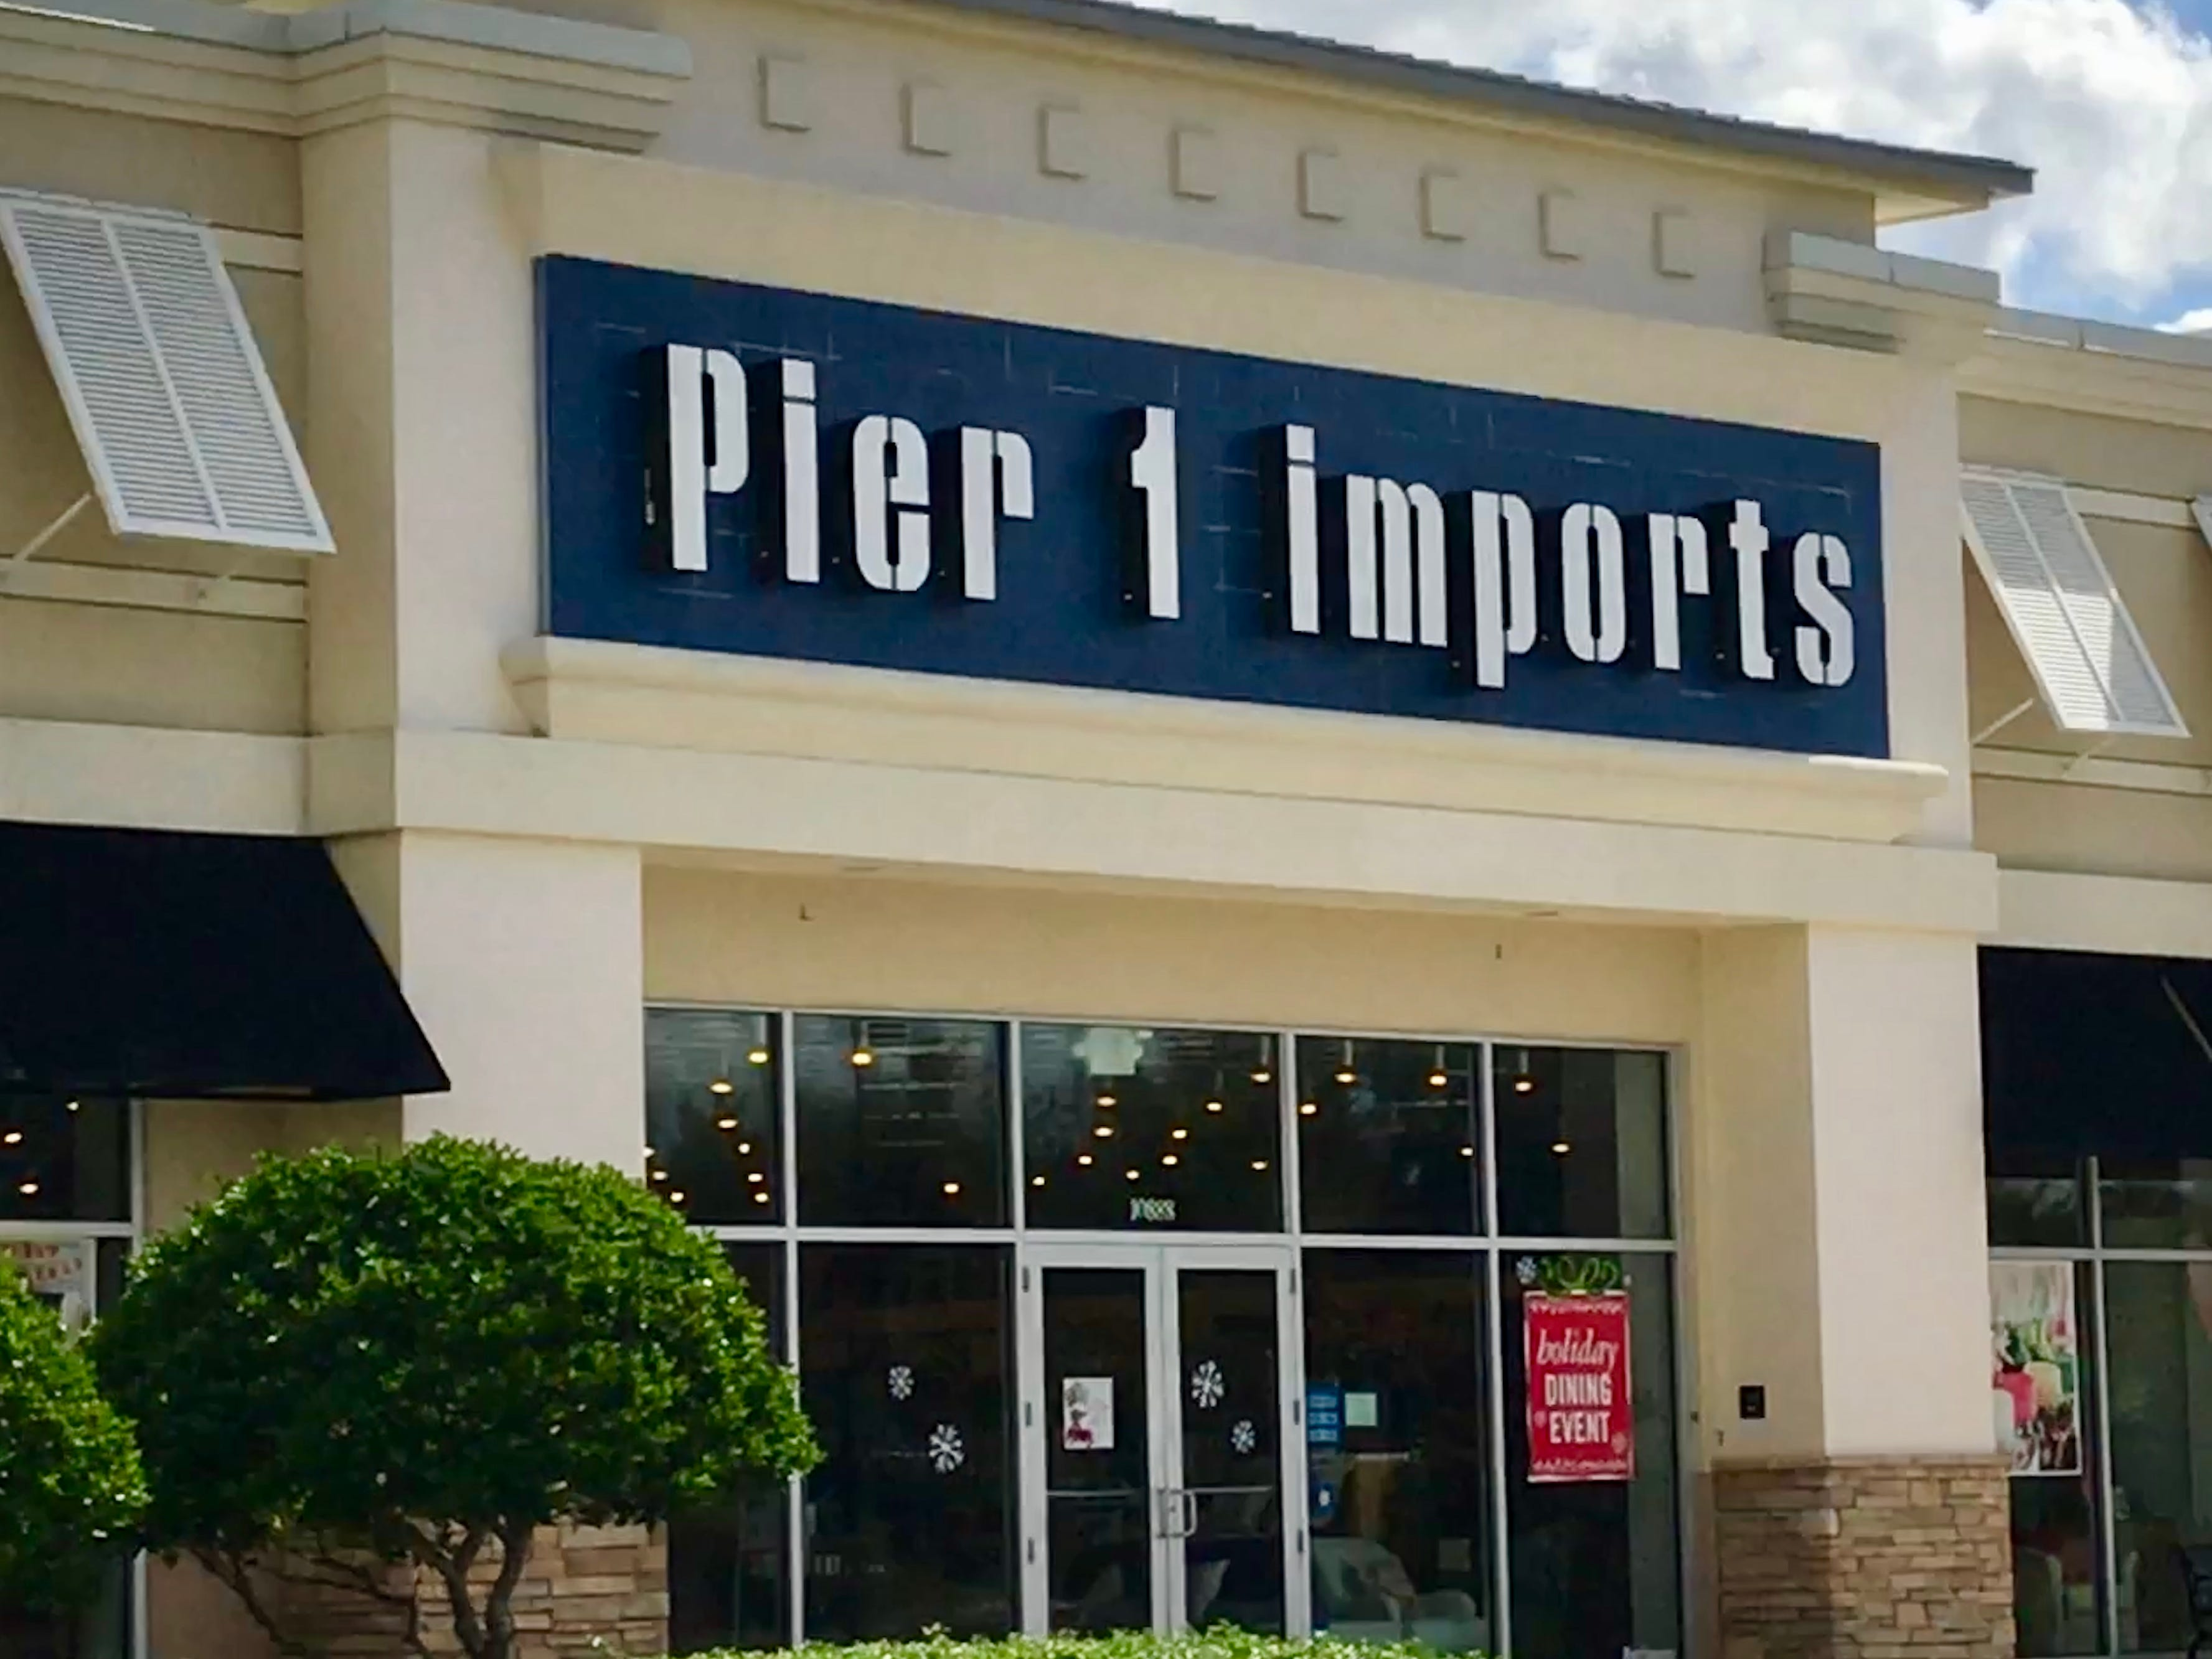 Pier 1 stores will be closed Thanksgiving.